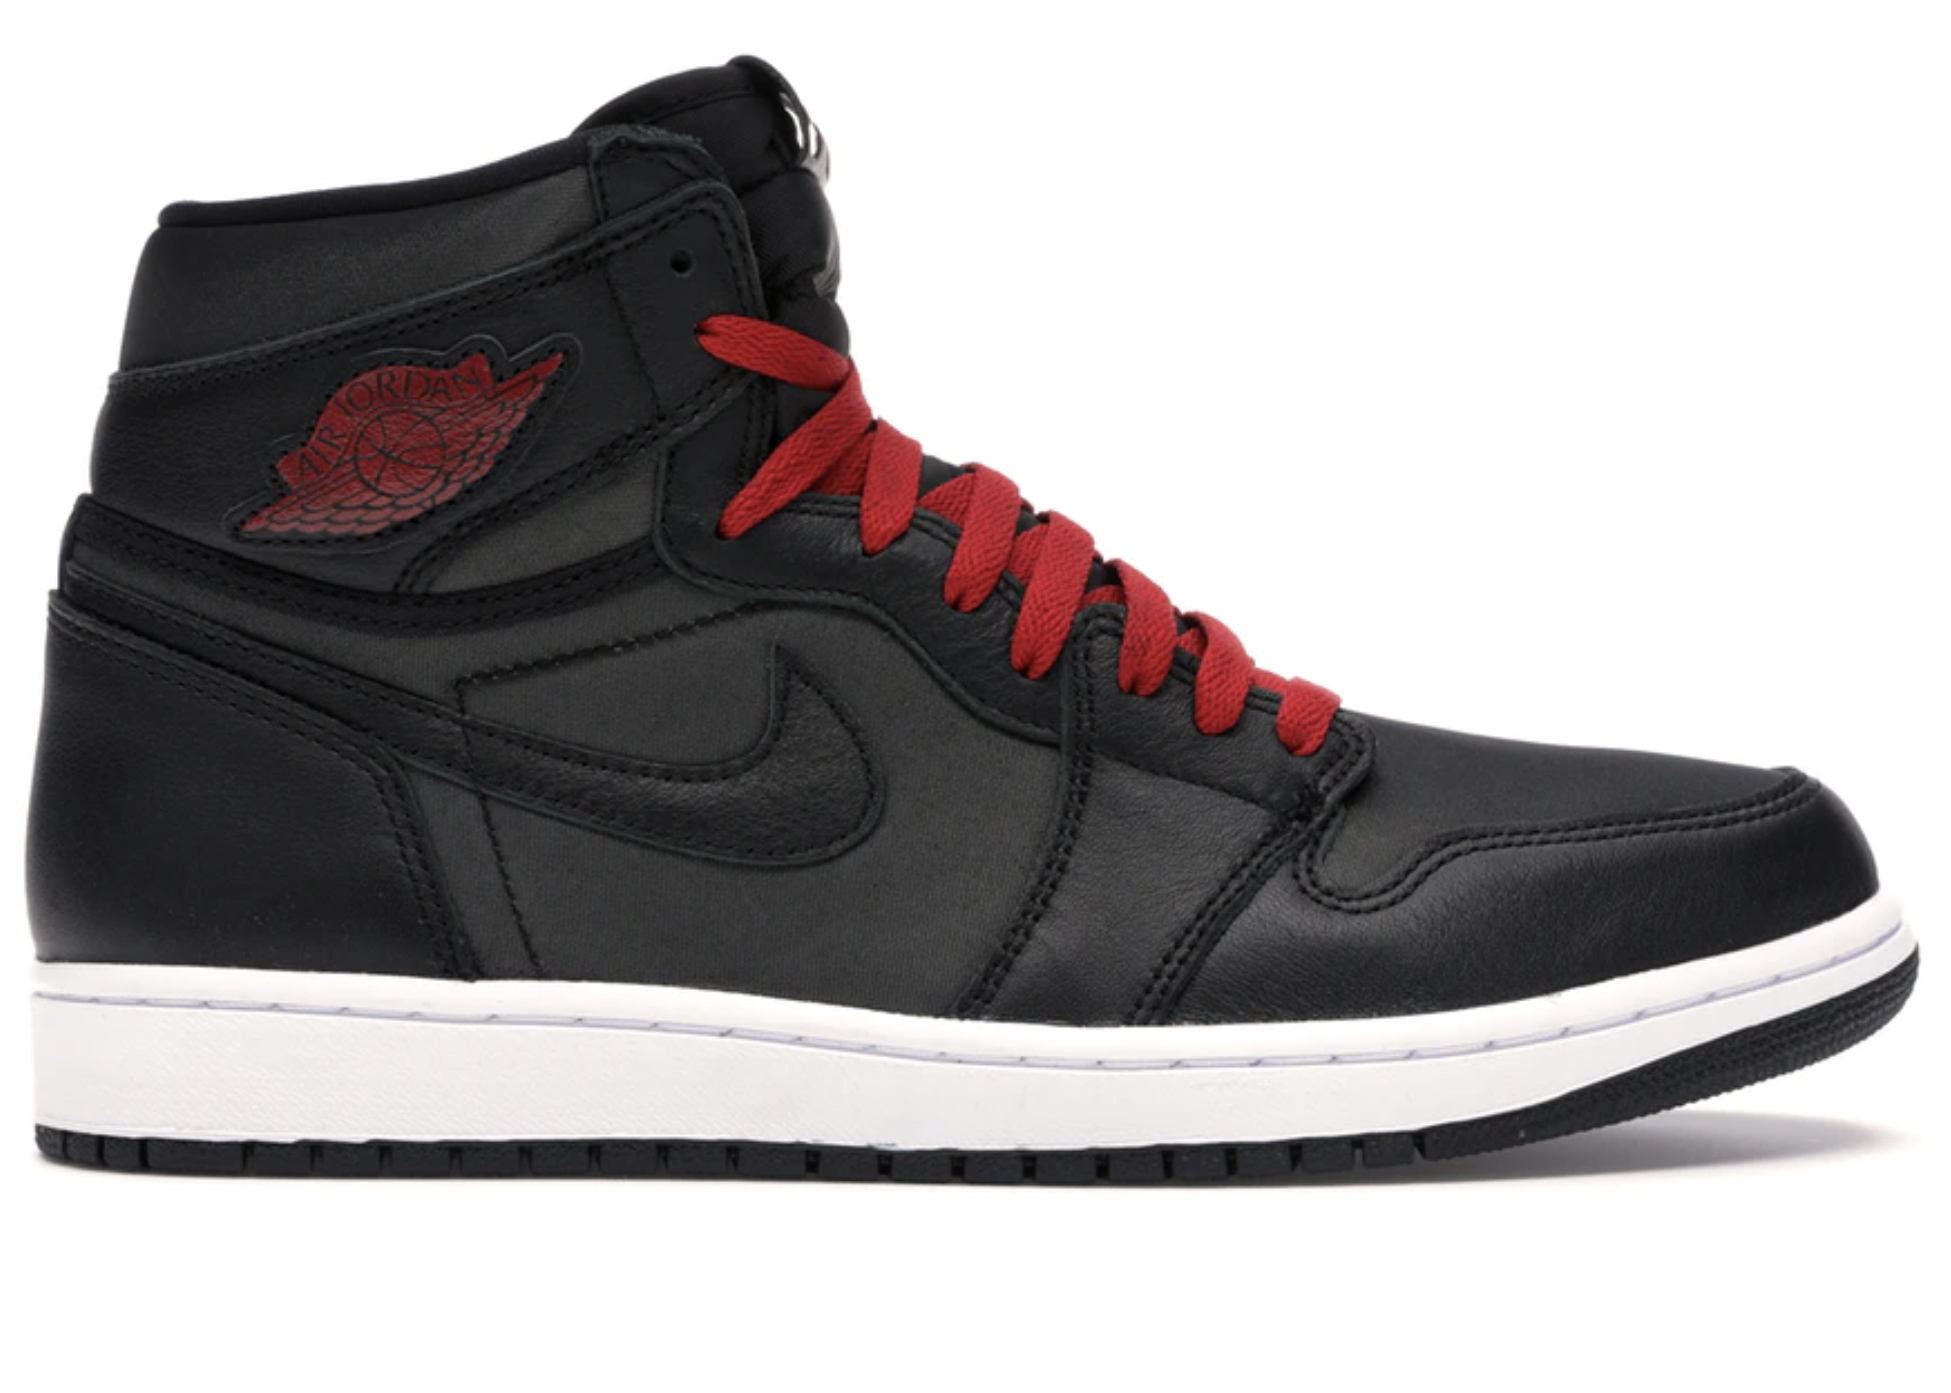 Jordan 1 Retro High Black Satin Gym Red - 555088-060